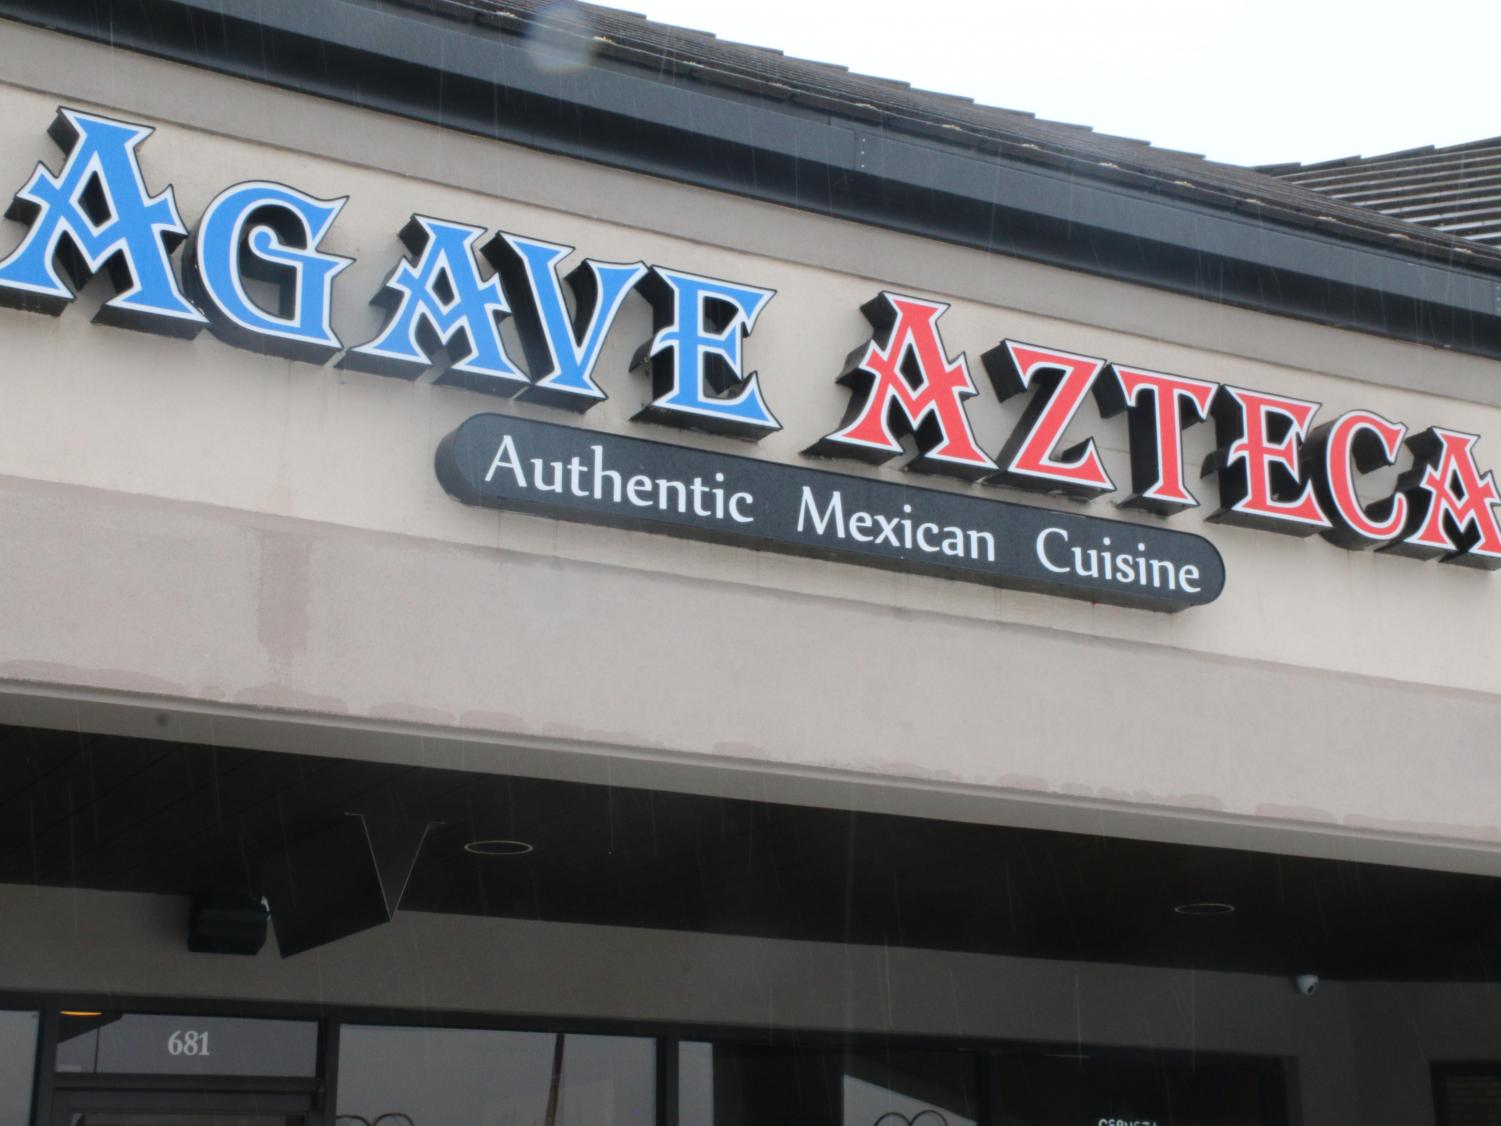 Front of restaurant, Agave Azteca